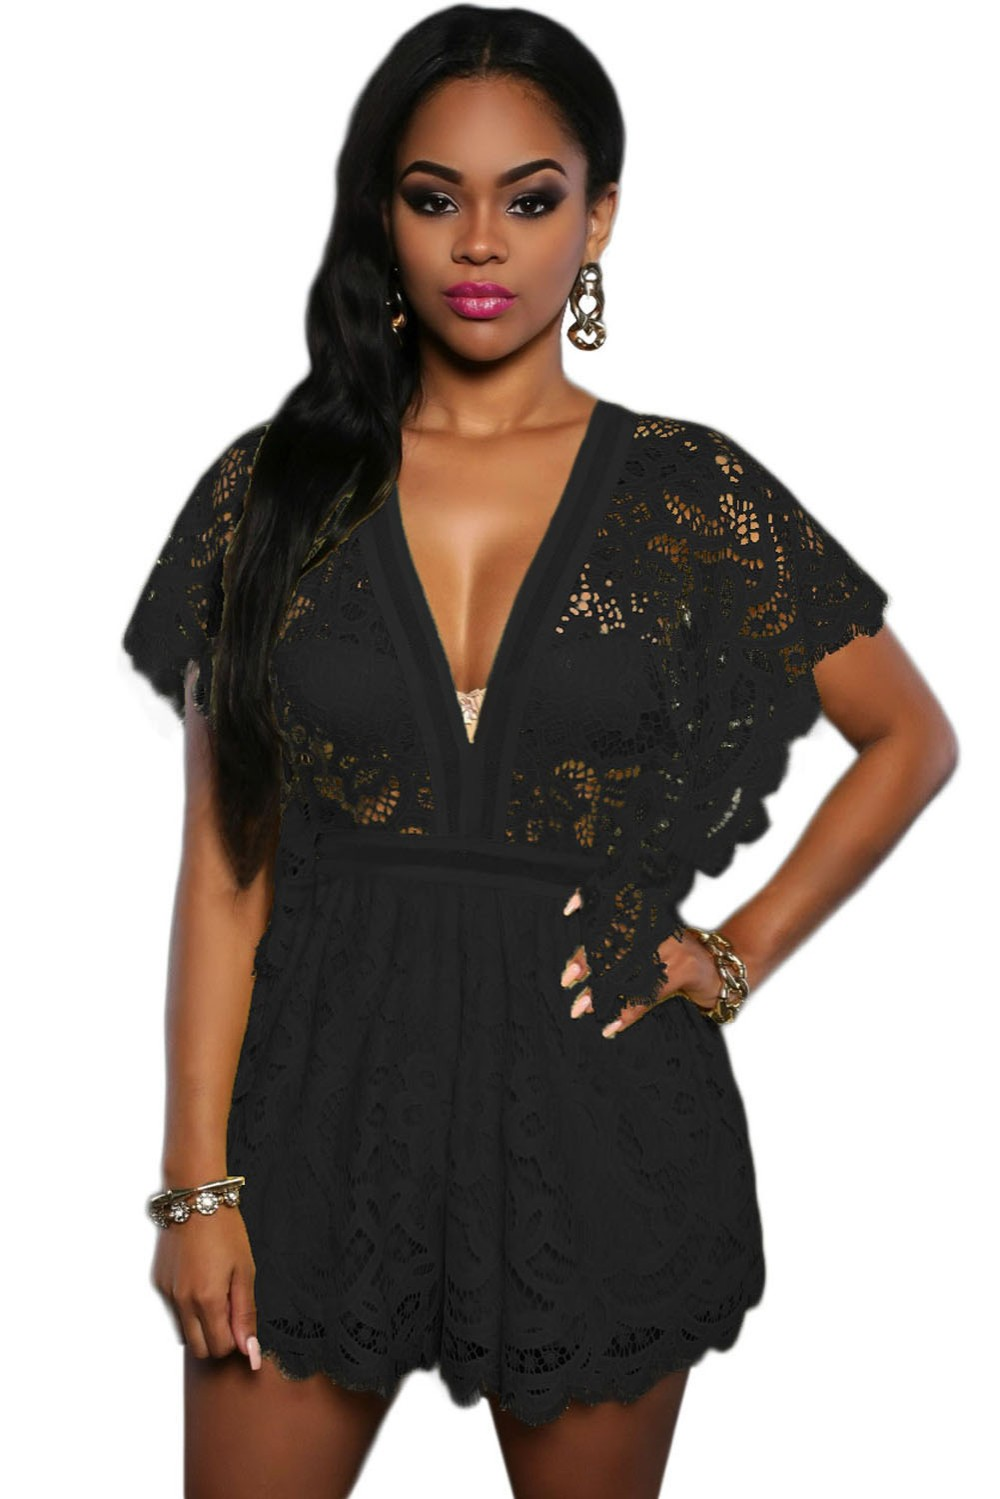 Black-Lace-Sheer-Top-Romper-LC64004-2-1